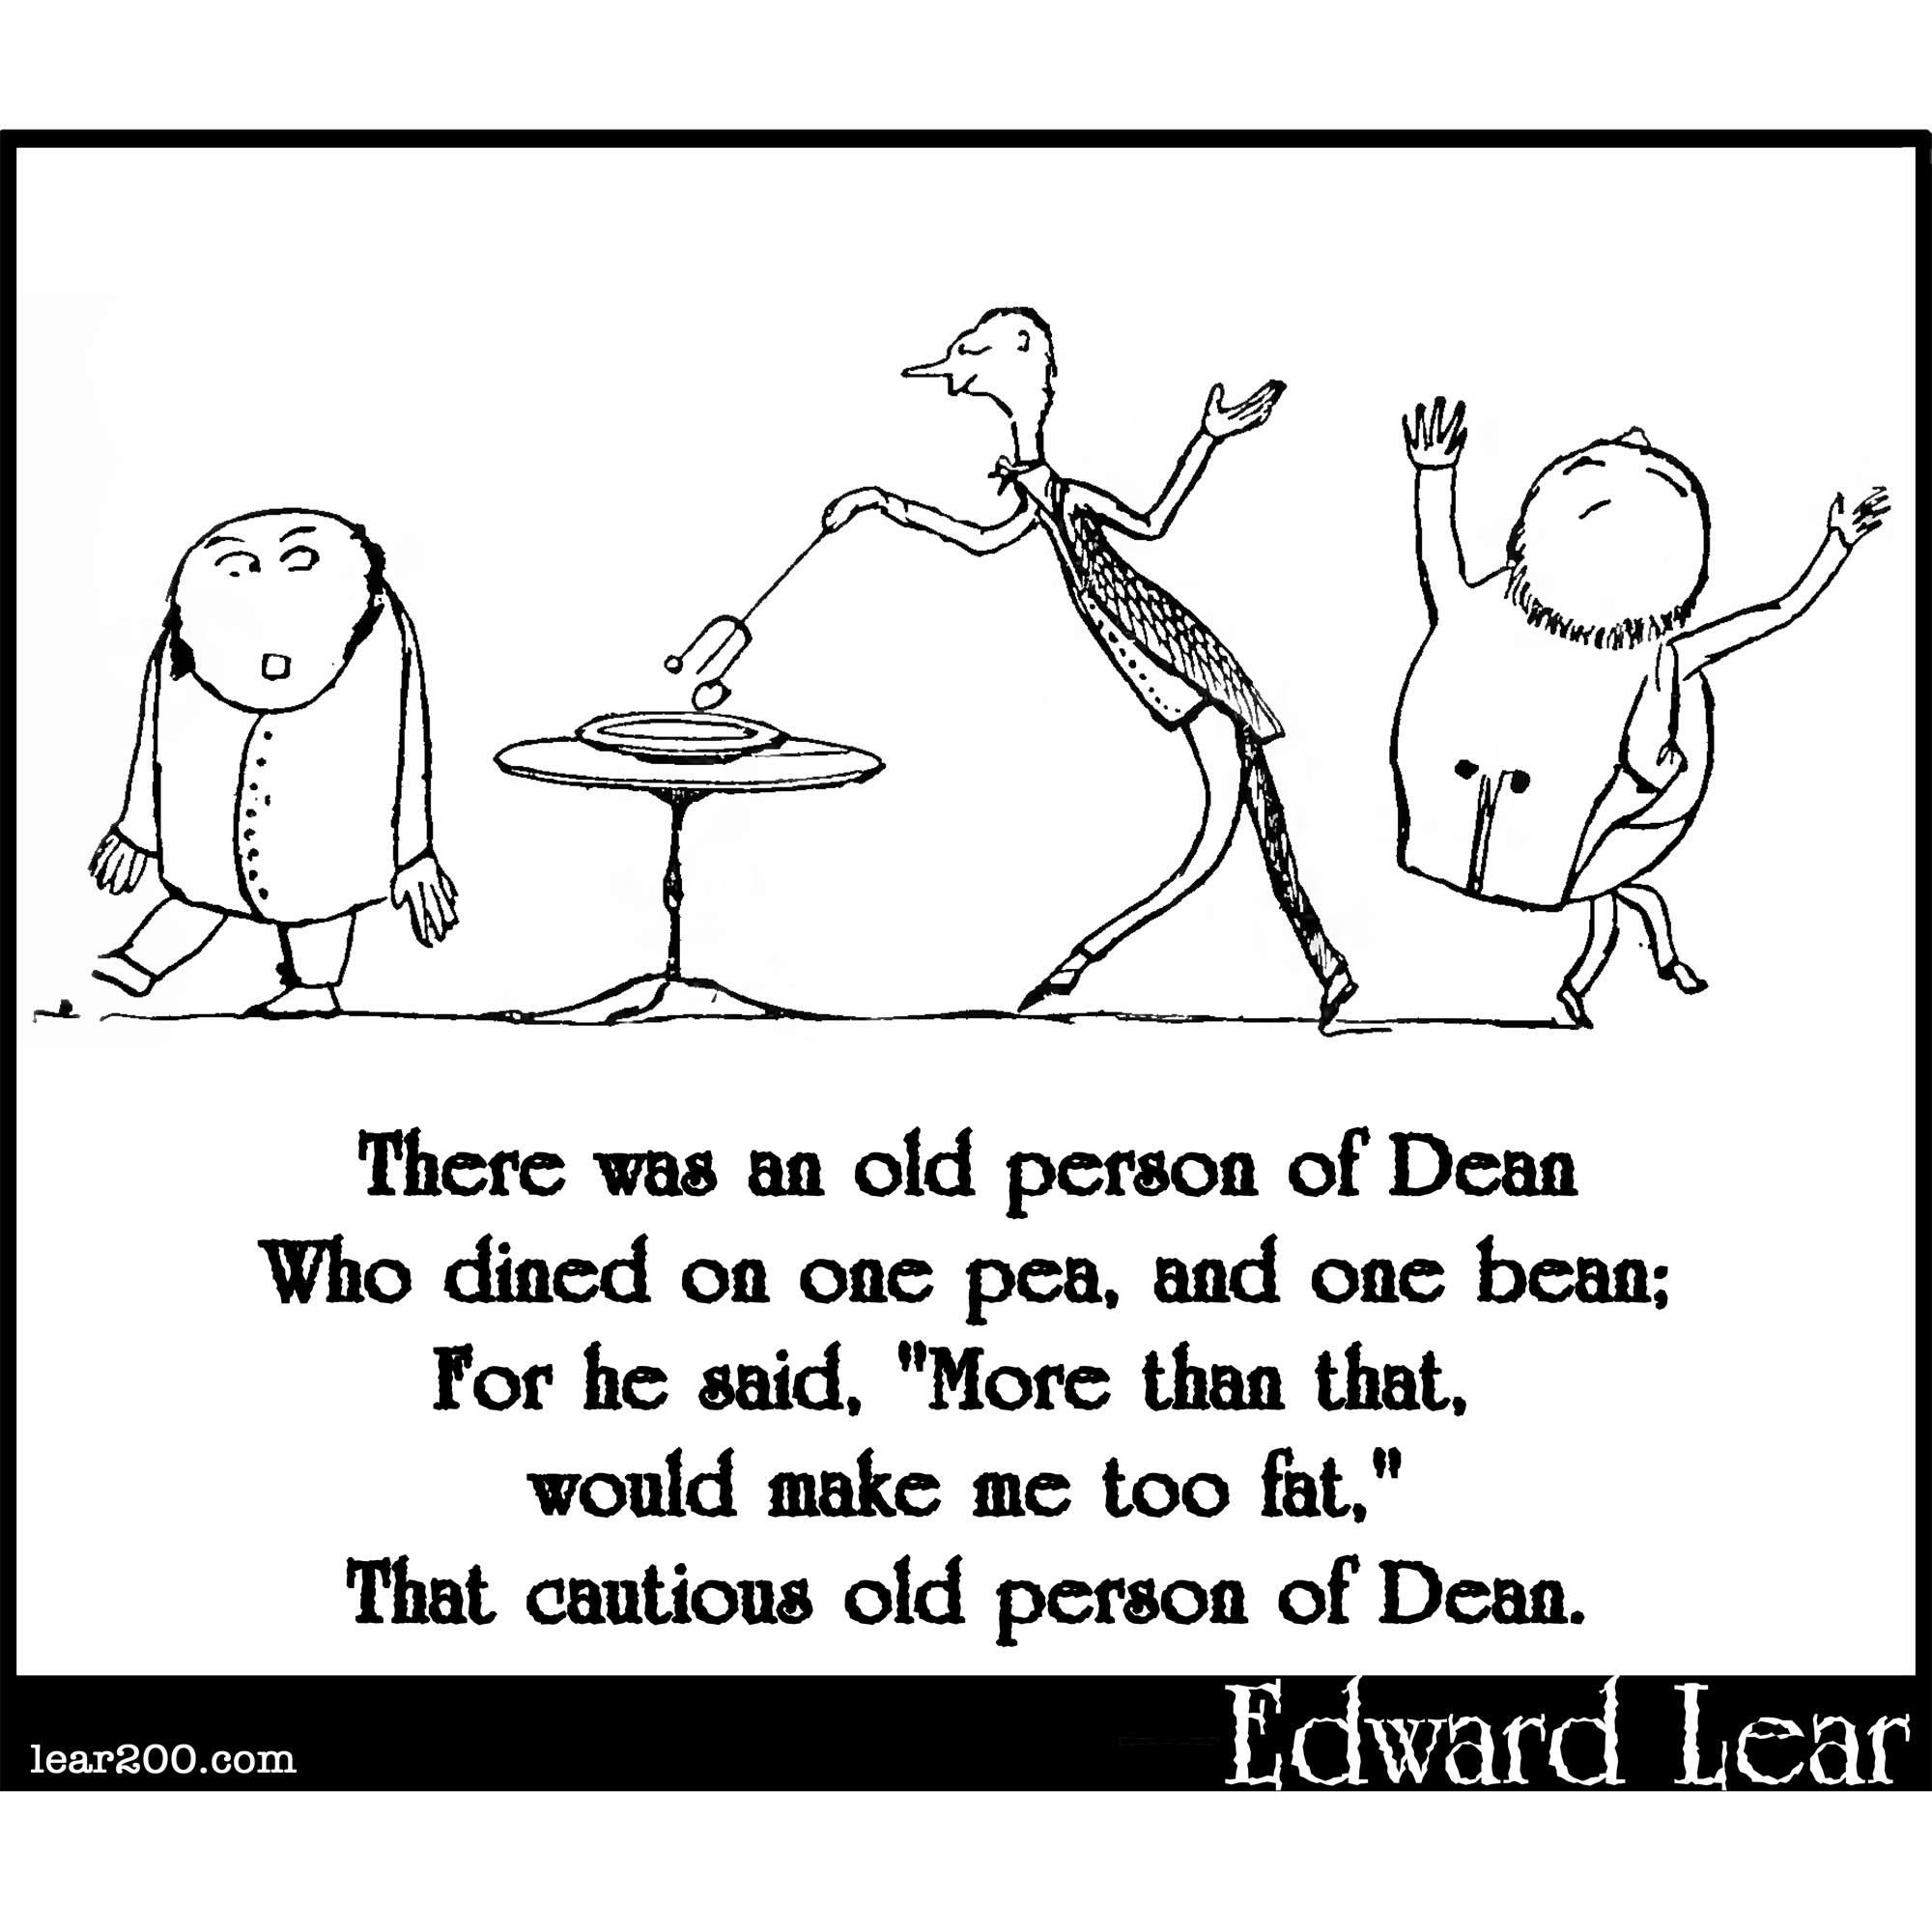 There was an old person of Dean